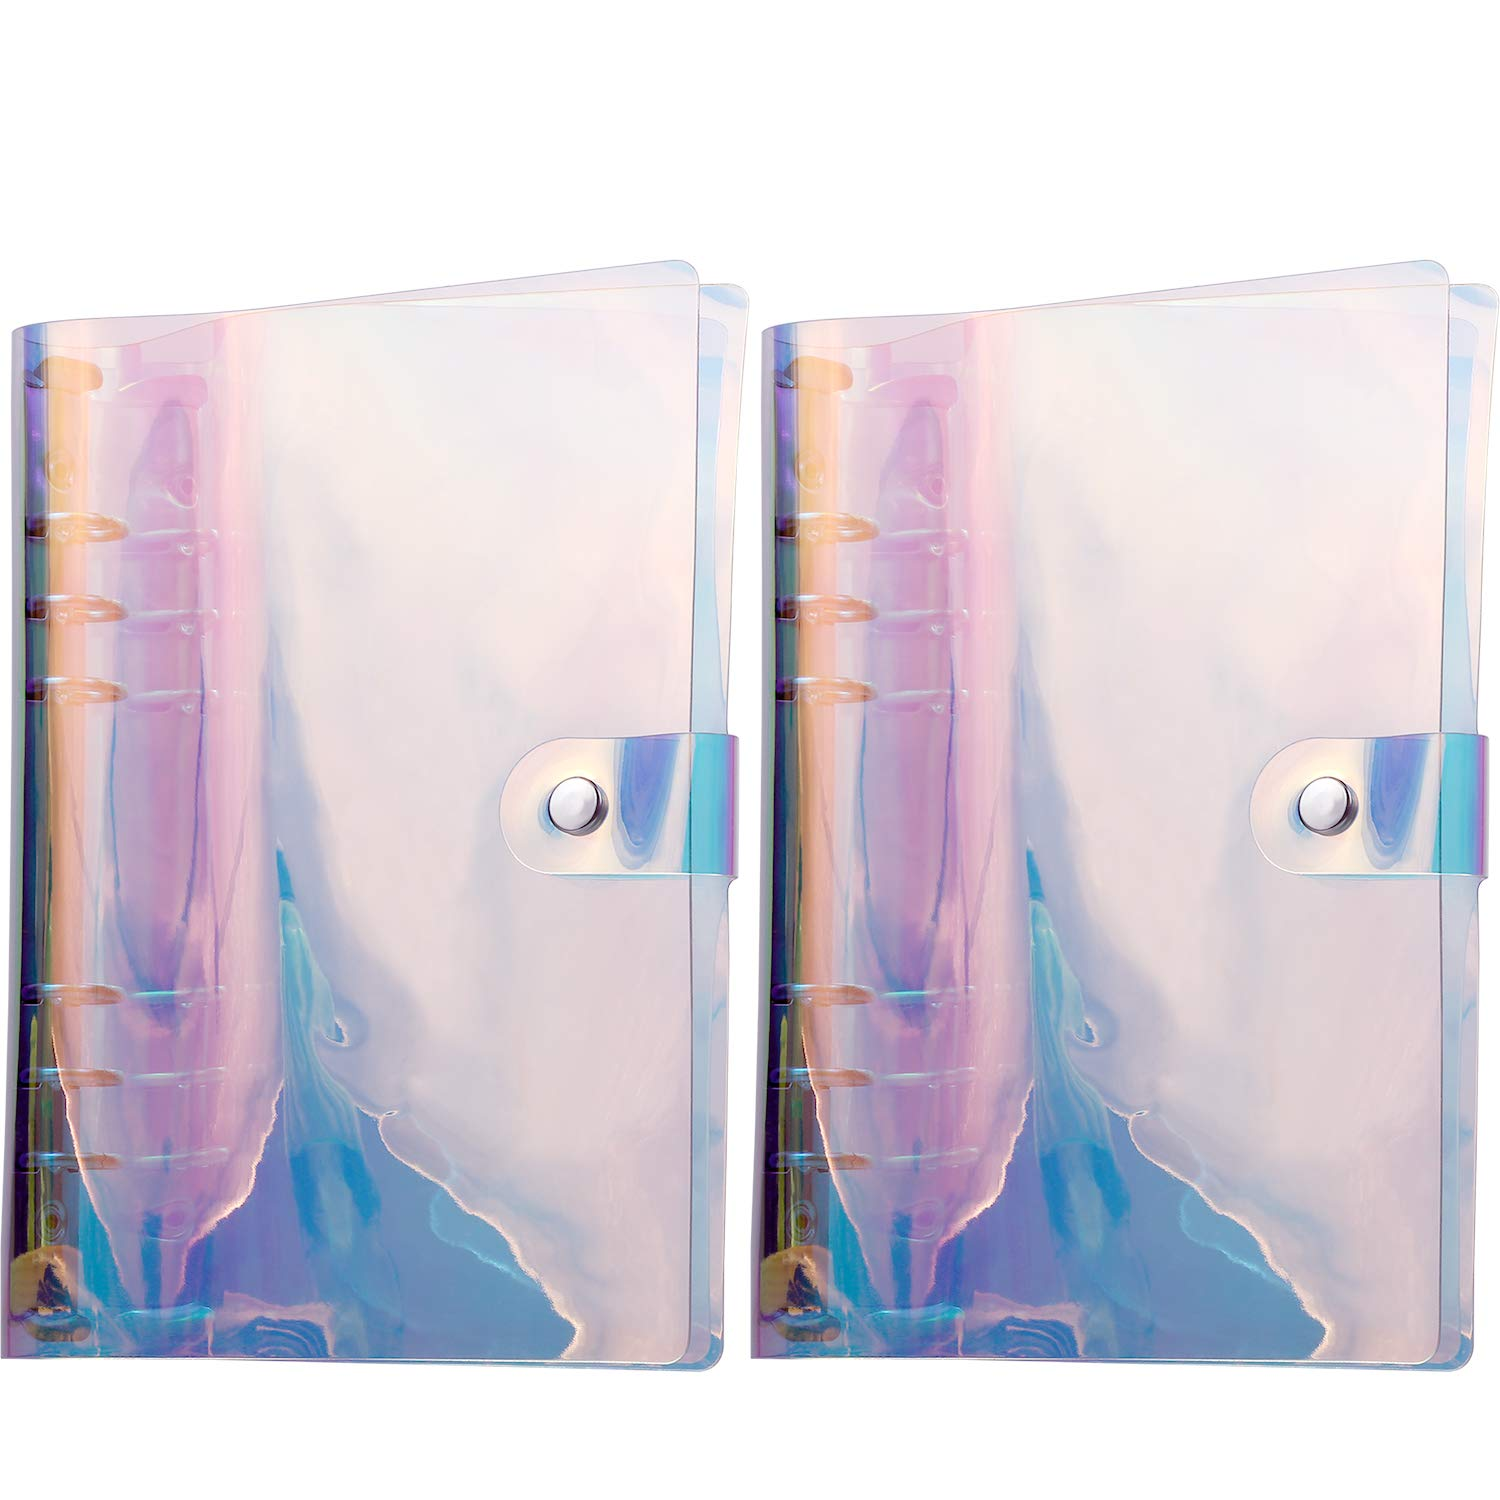 TecUnite 2 Pack Notebook Binder Covers 6 Ring Rainbow Binders with Button Closure (19 x 13 cm for A6)